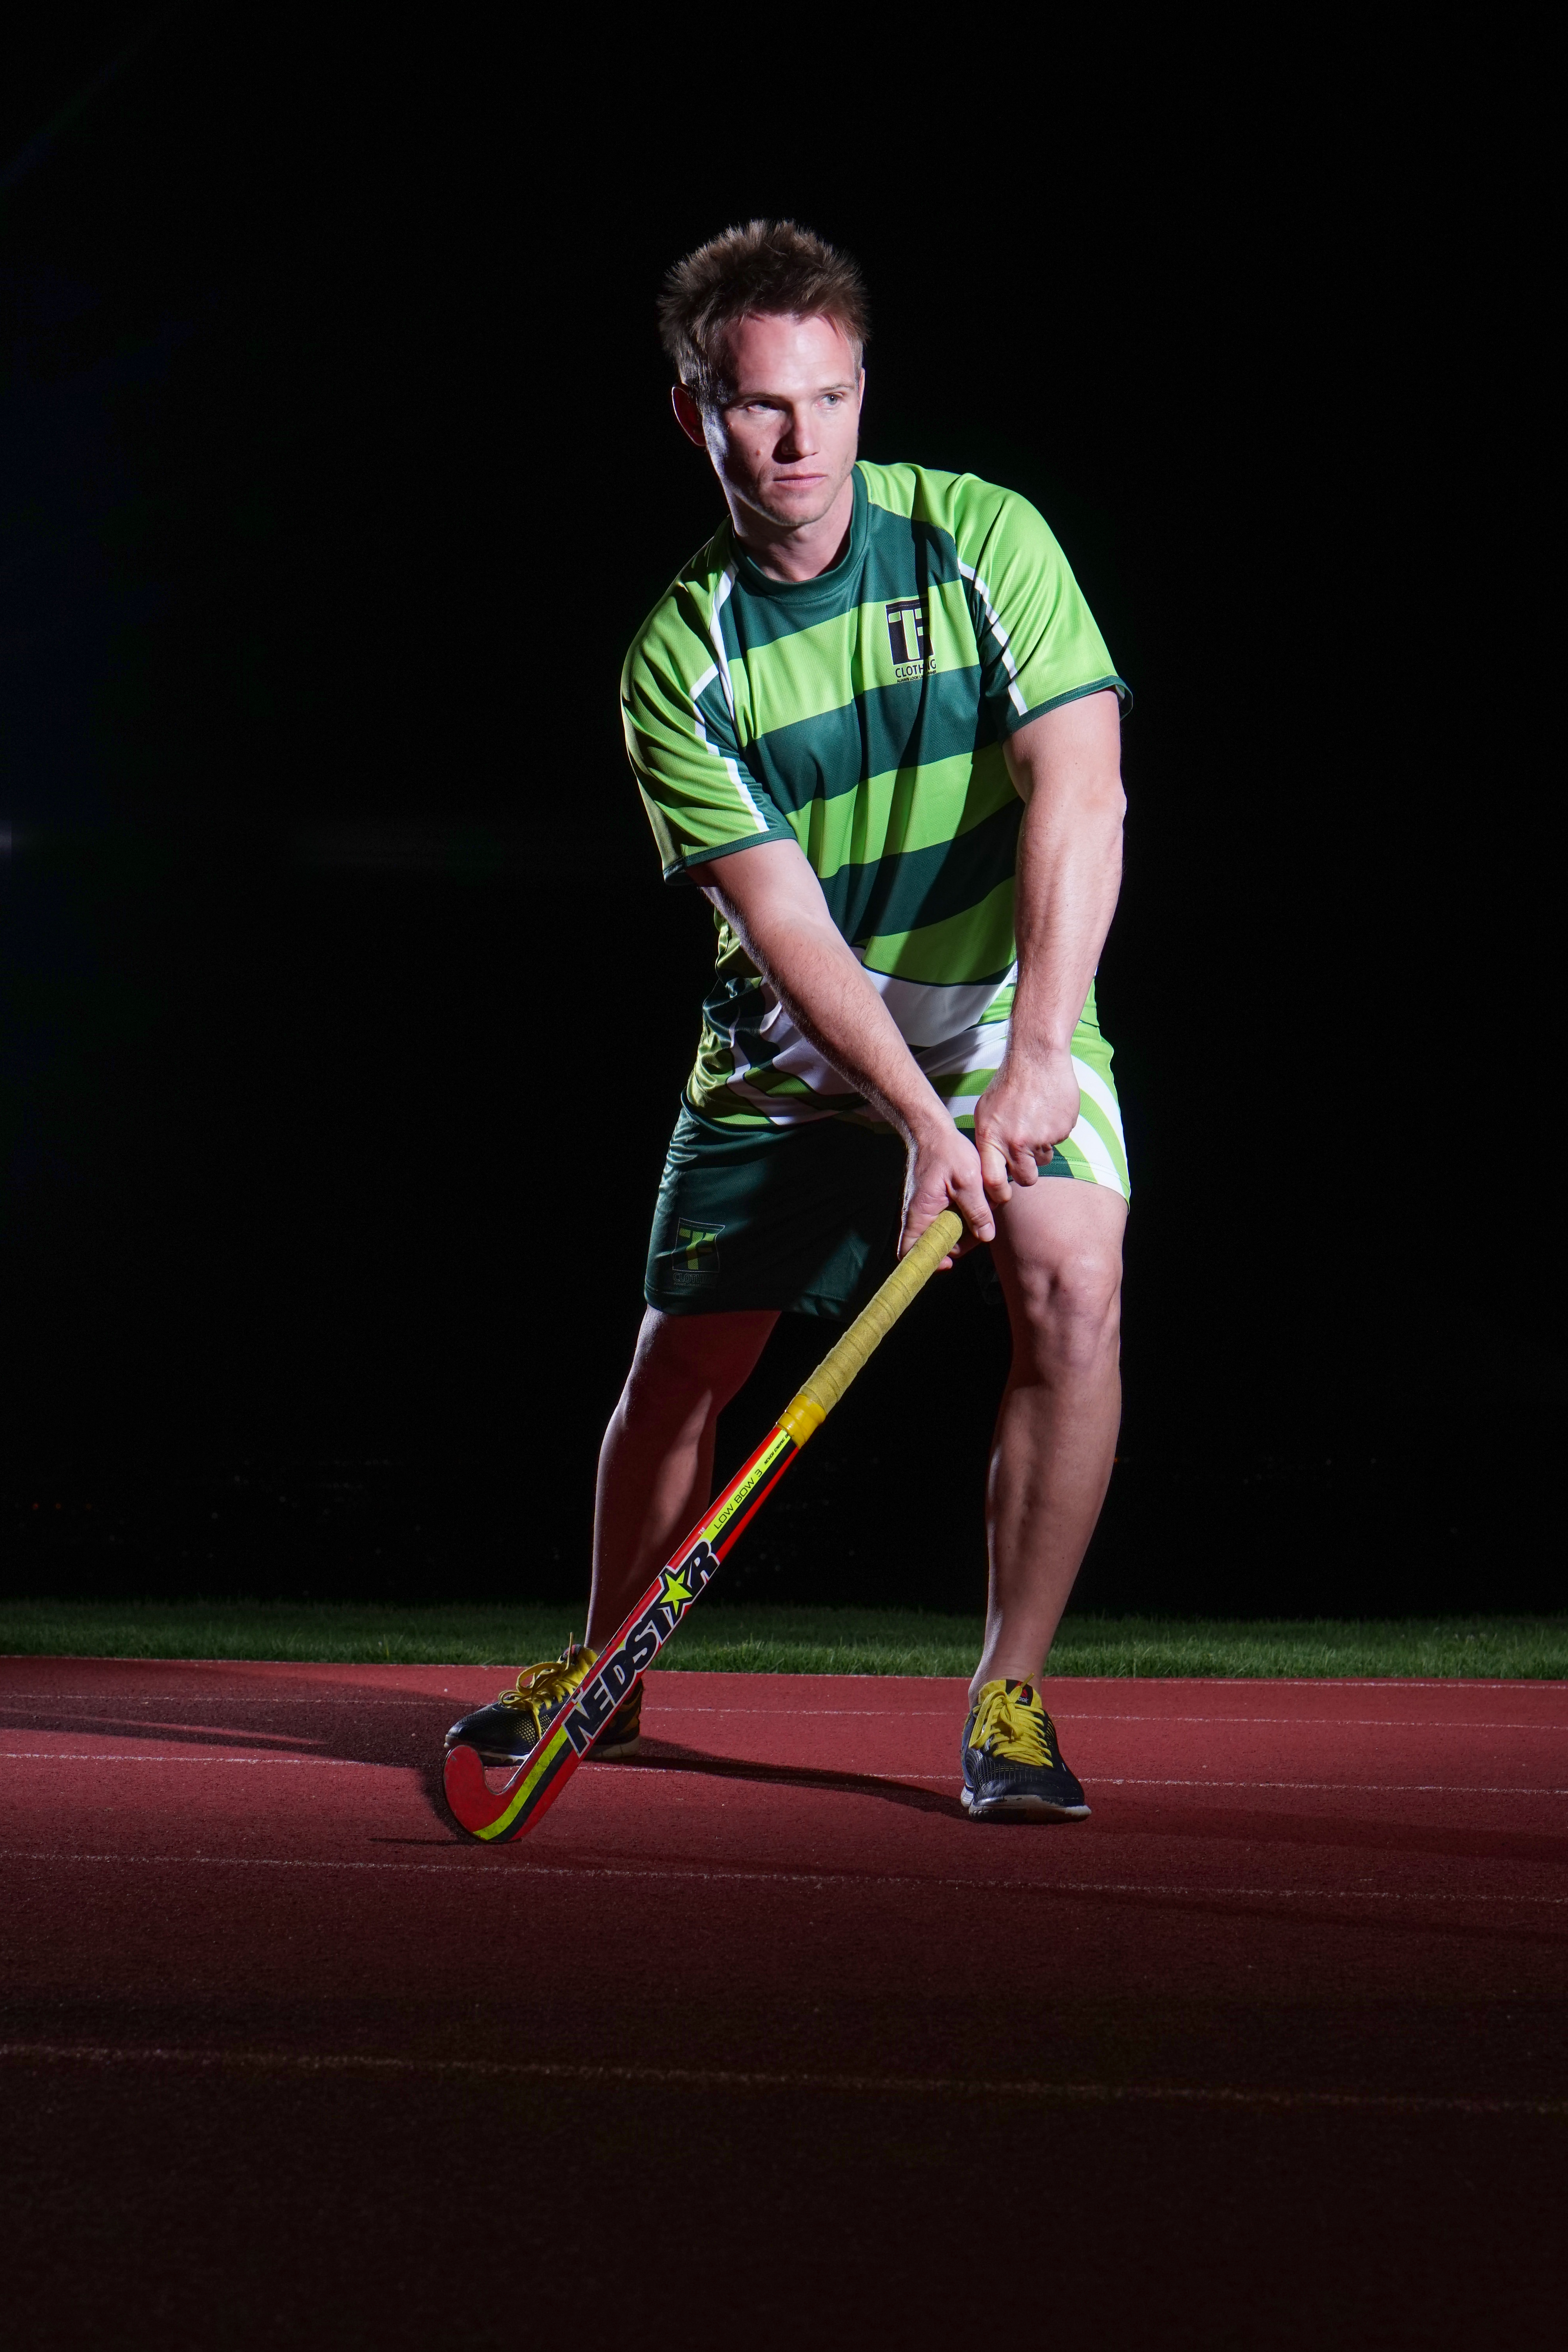 sport photo, hockey, male